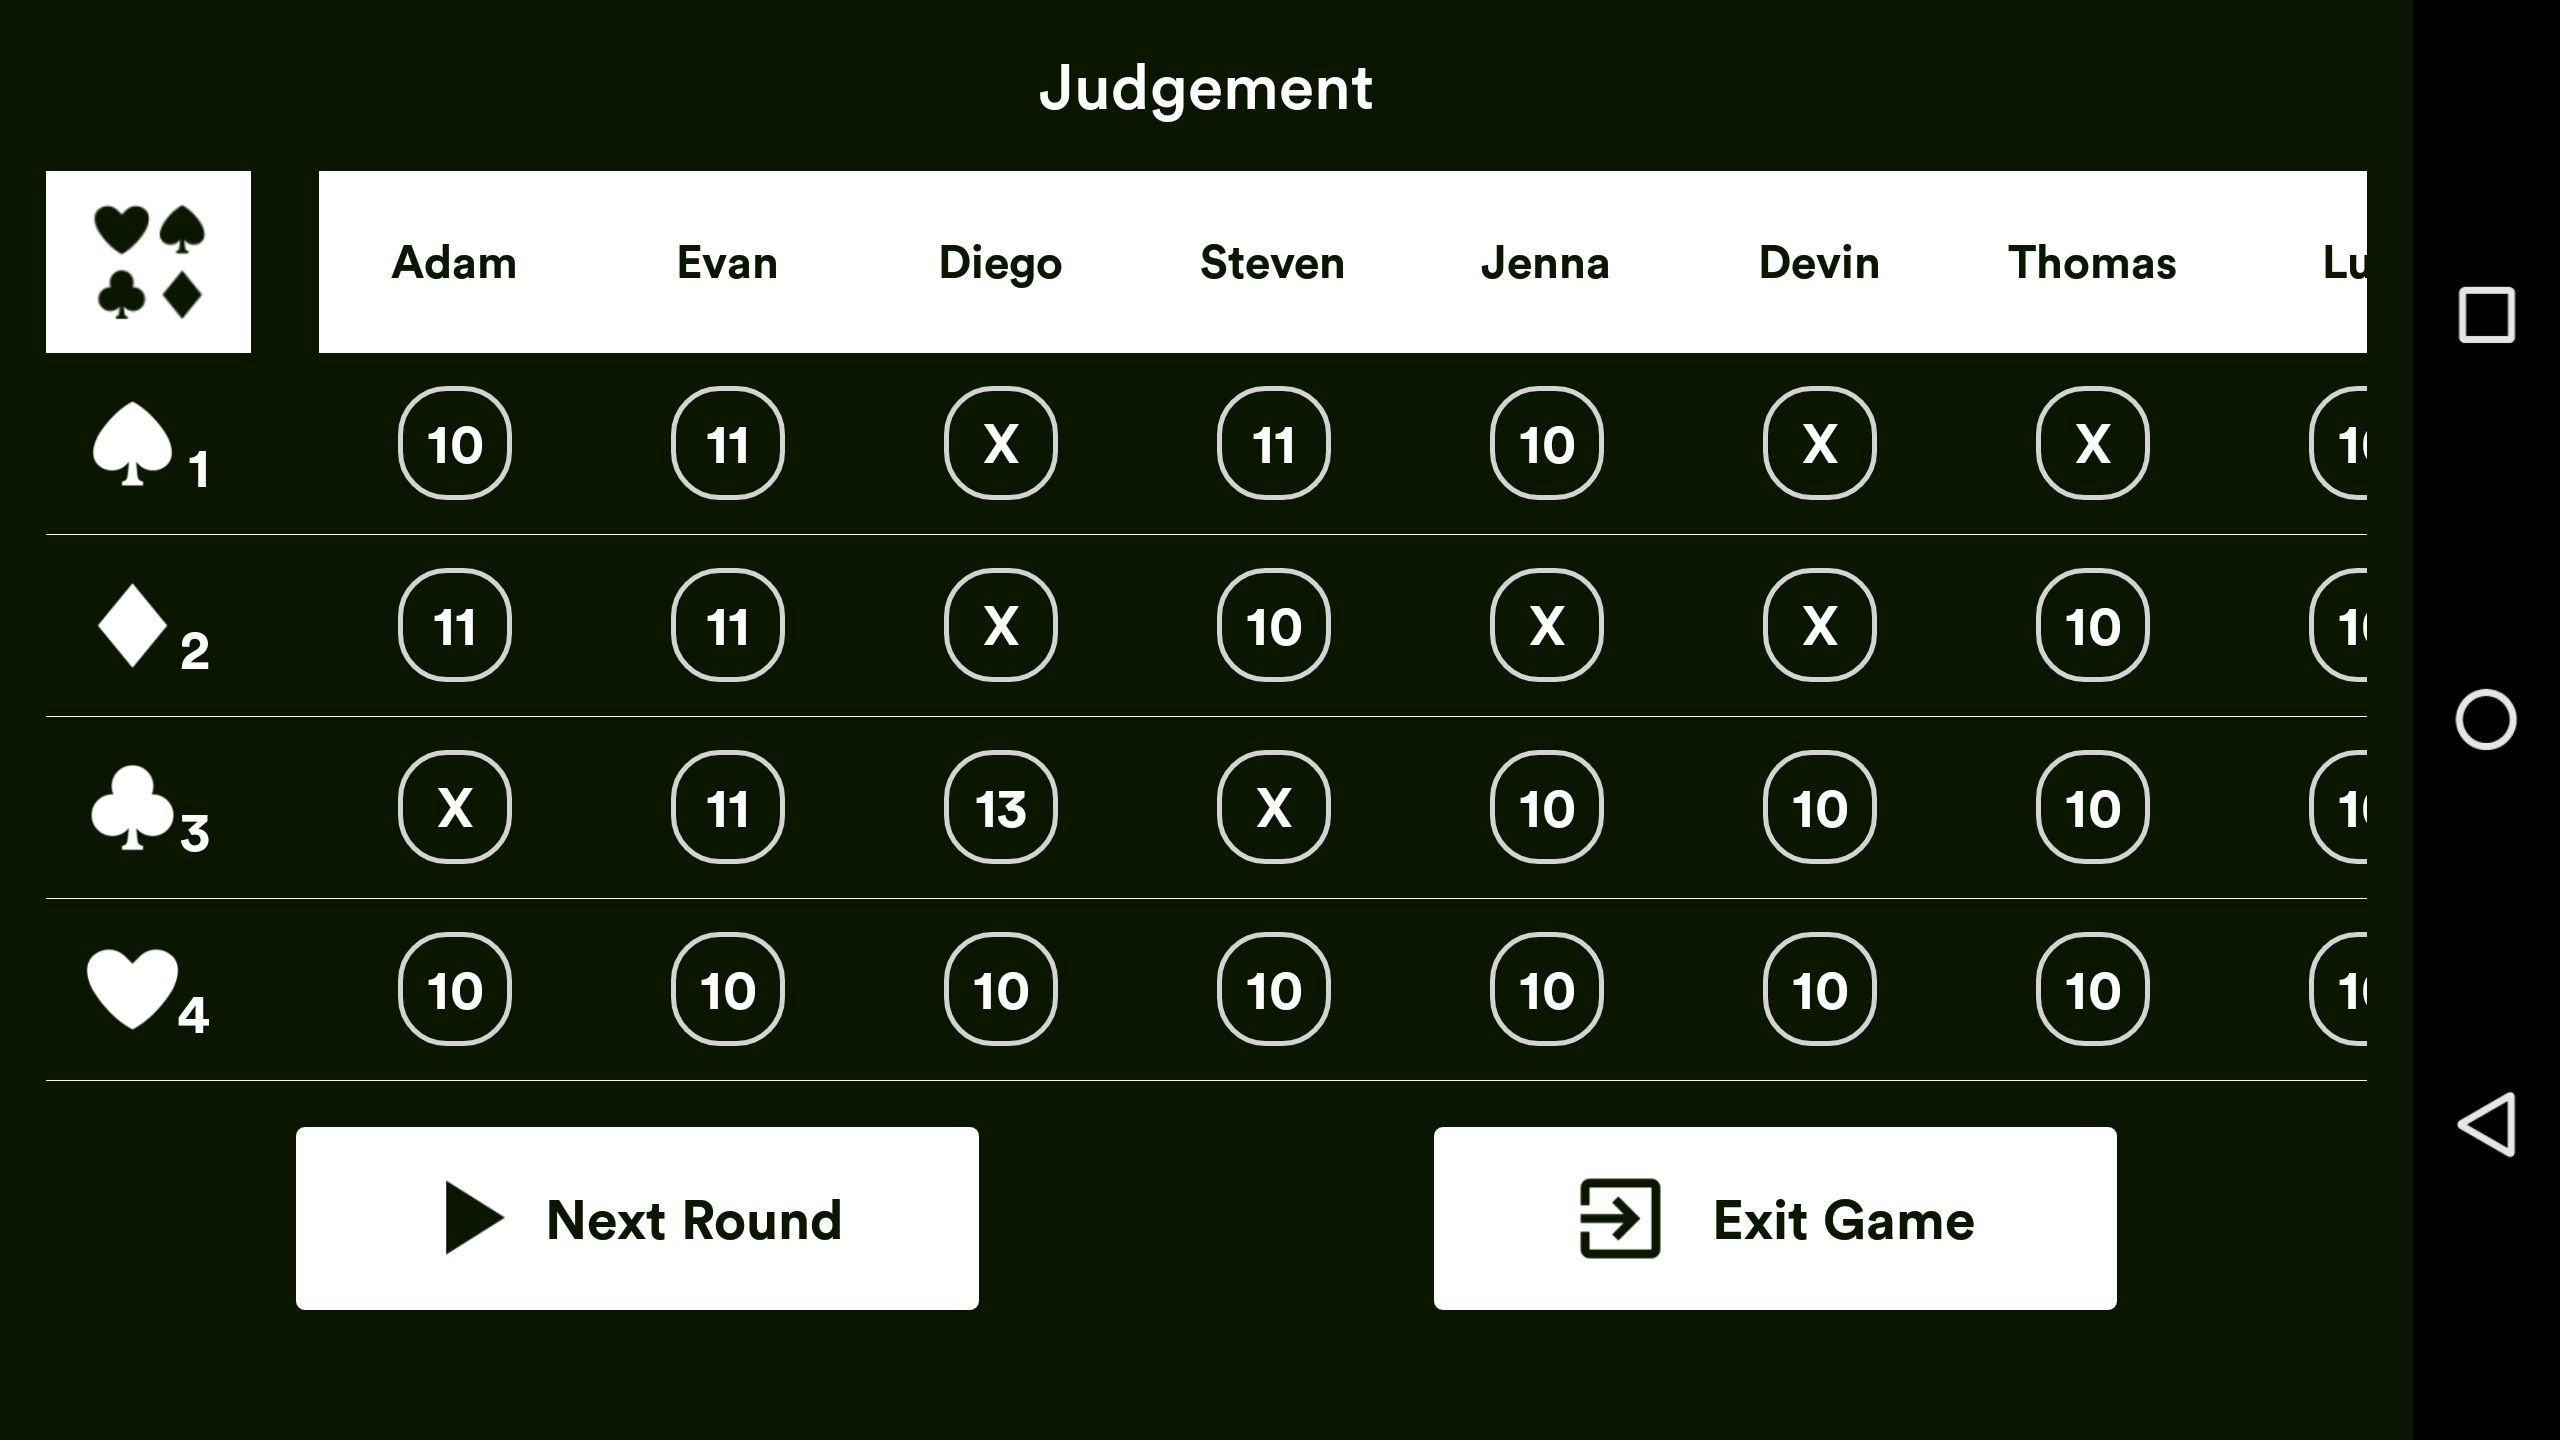 Judgement Android Source Code Screenshot 15